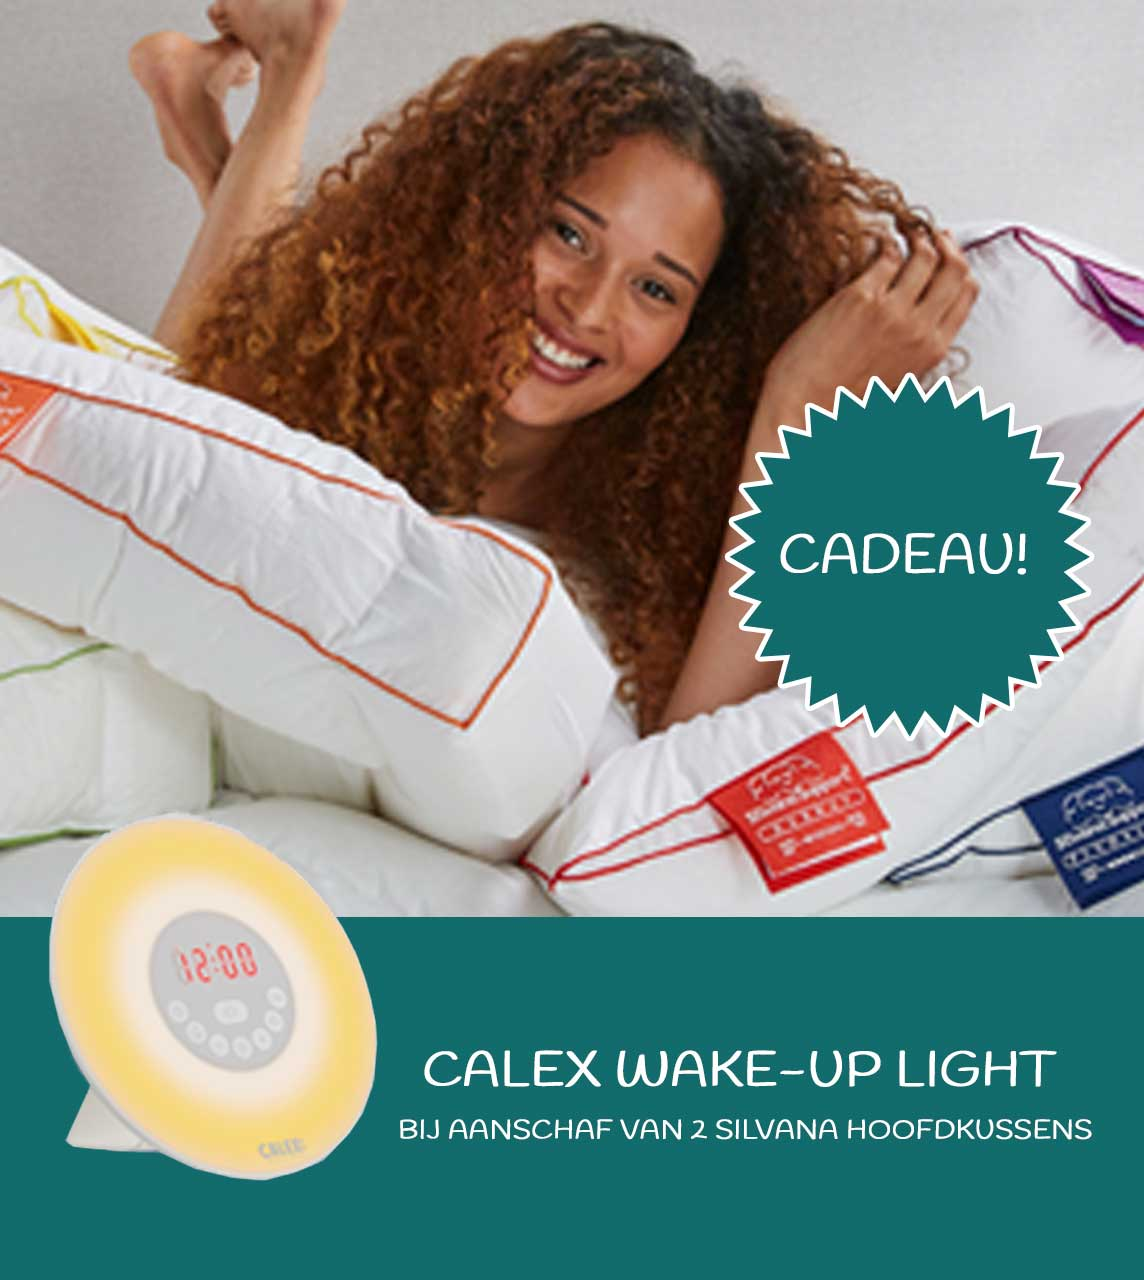 Calex wake-up light cadeau!